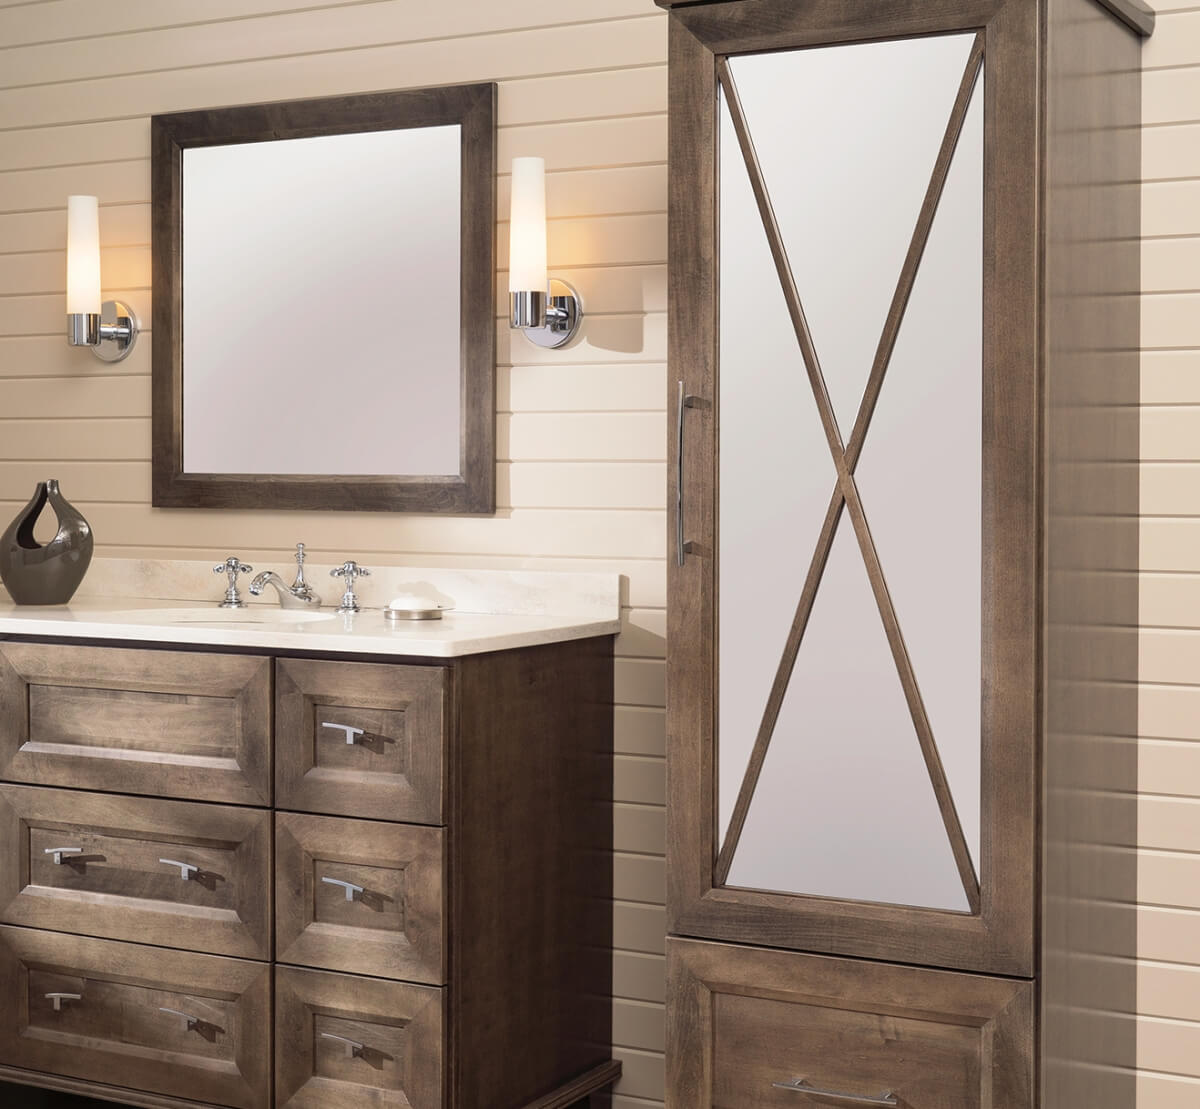 Light to Medium stained bathroom vanity and linen cabinet with an X pattern mullion door with a tall mirror glass insert in the cabinet door.